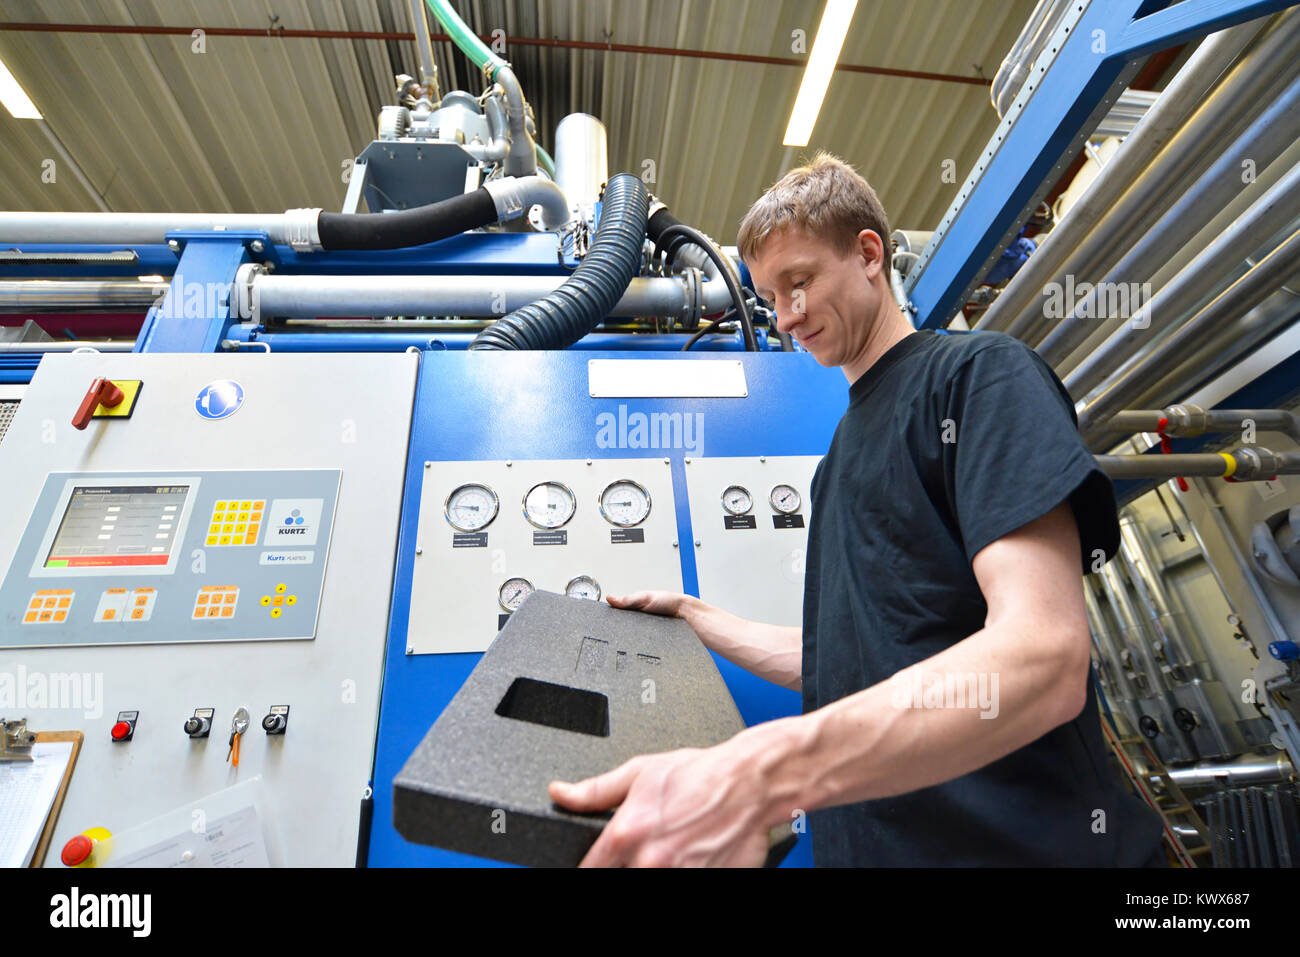 worker operates machine in the plastics industry - production of styrofoam components - Stock Image